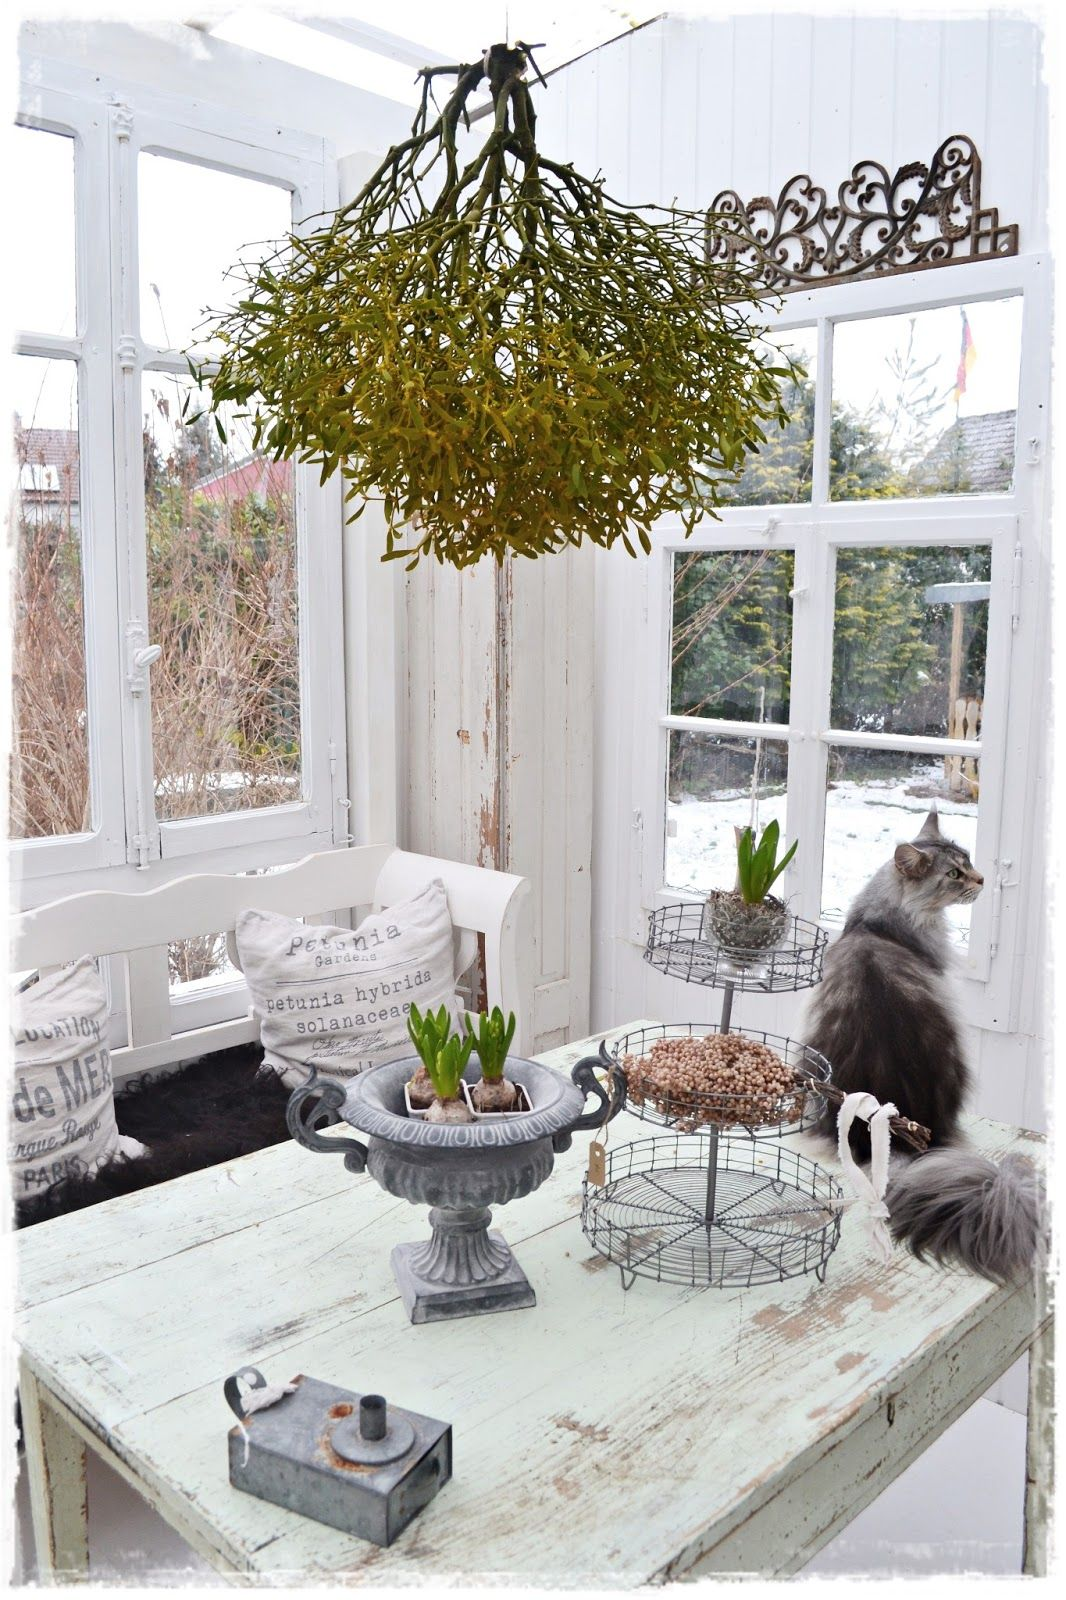 Wintergarten Einrichten Tipps Shabby Chic Without The Cat 1 Pinterest